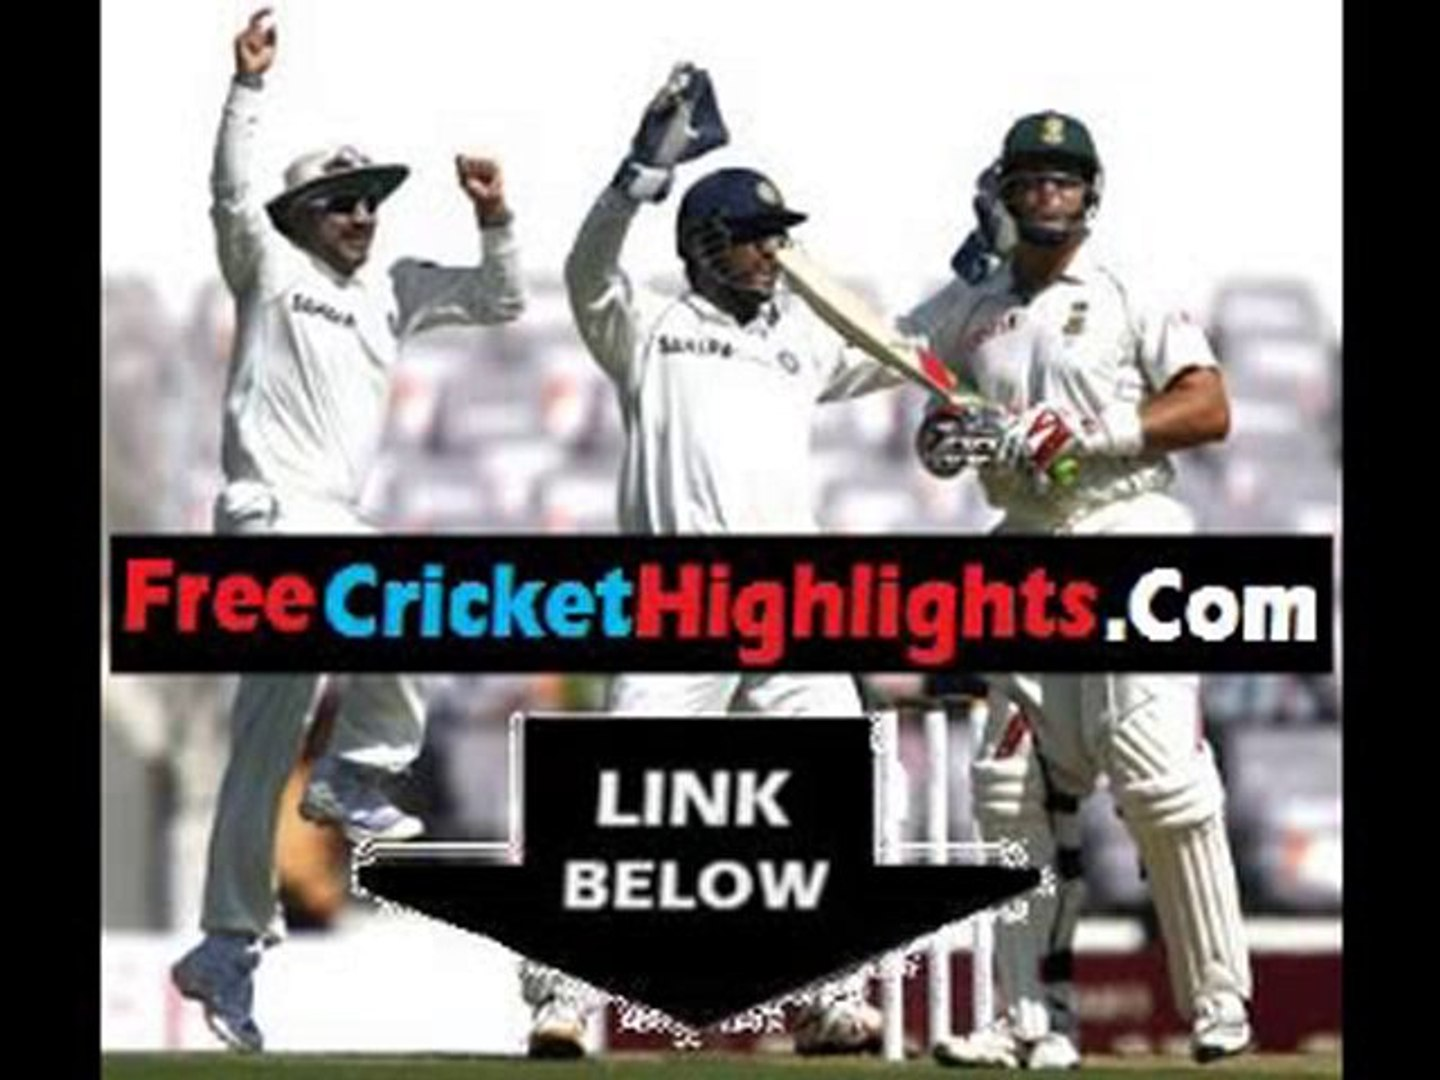 India Vs South Africa Highlights 2nd Test Day 1 Dec 26